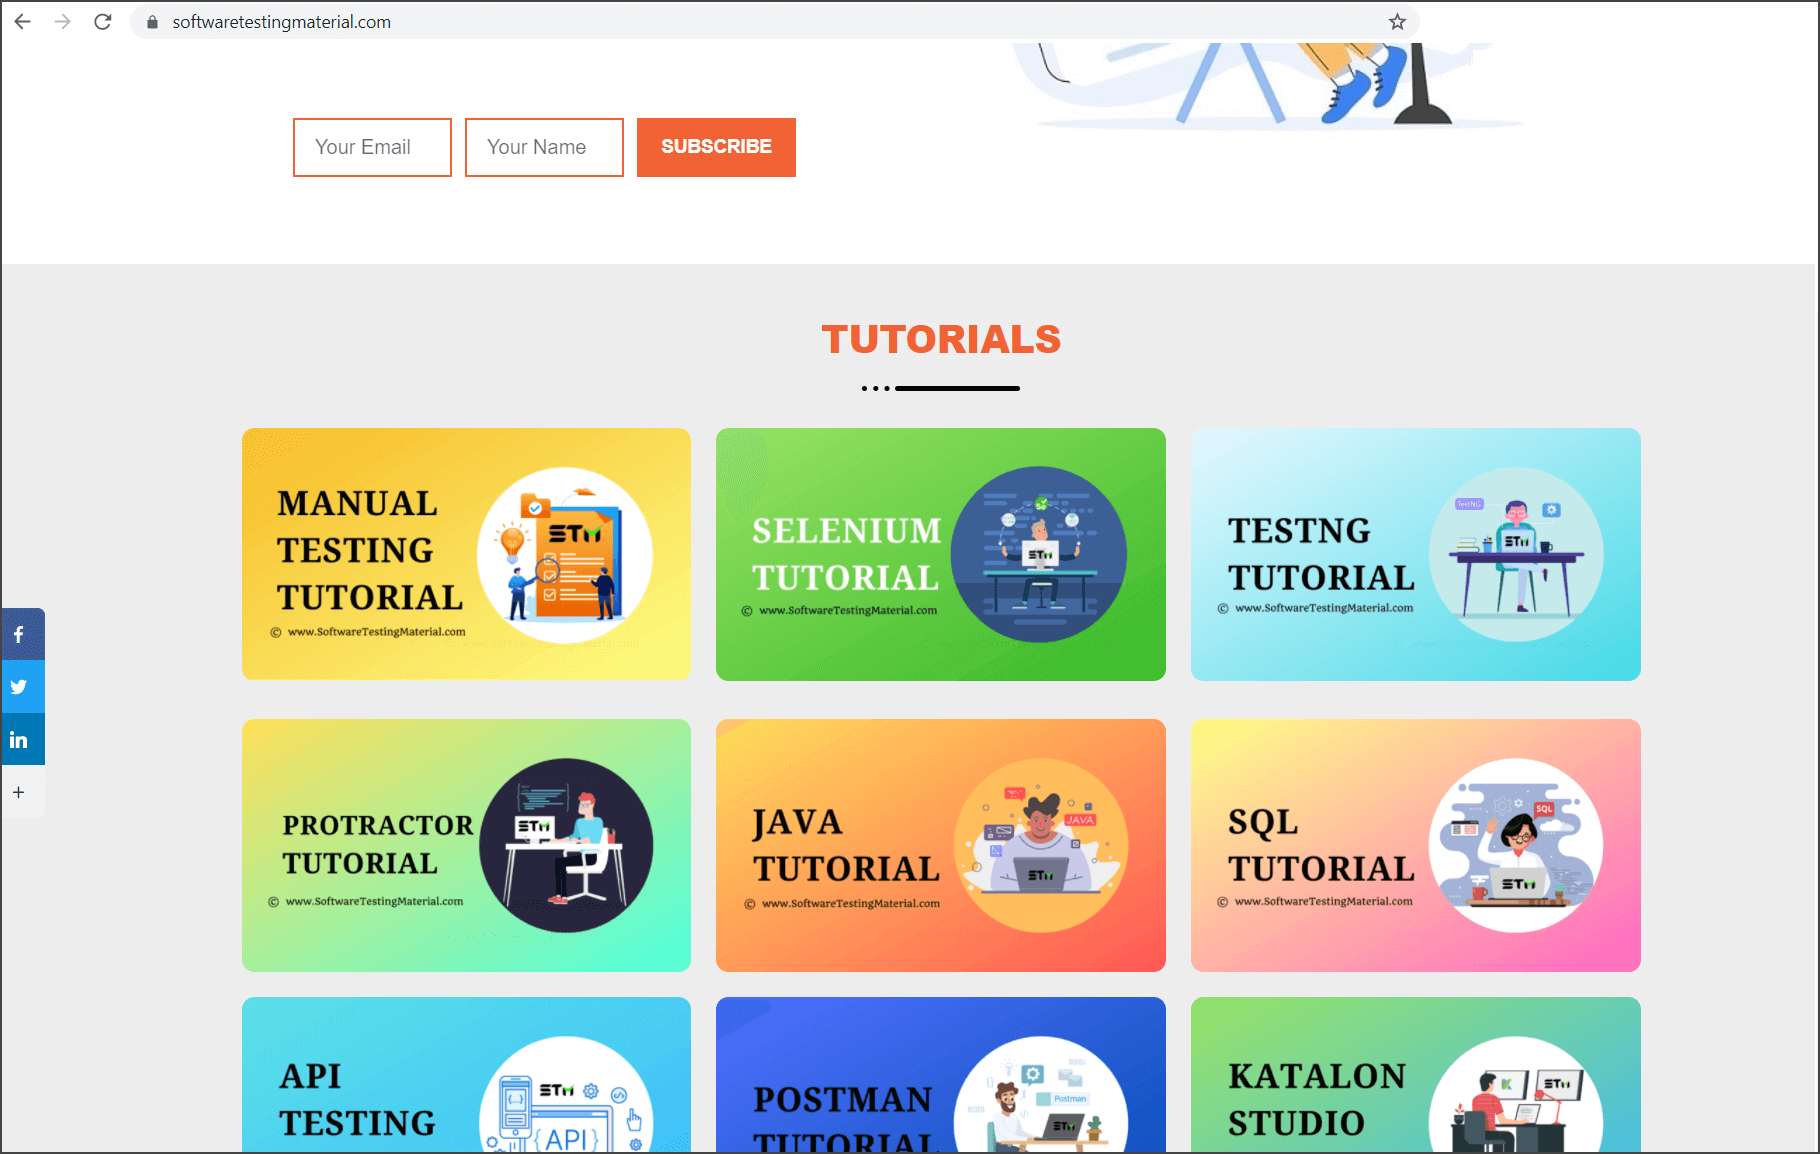 Software Testing Material Home Page